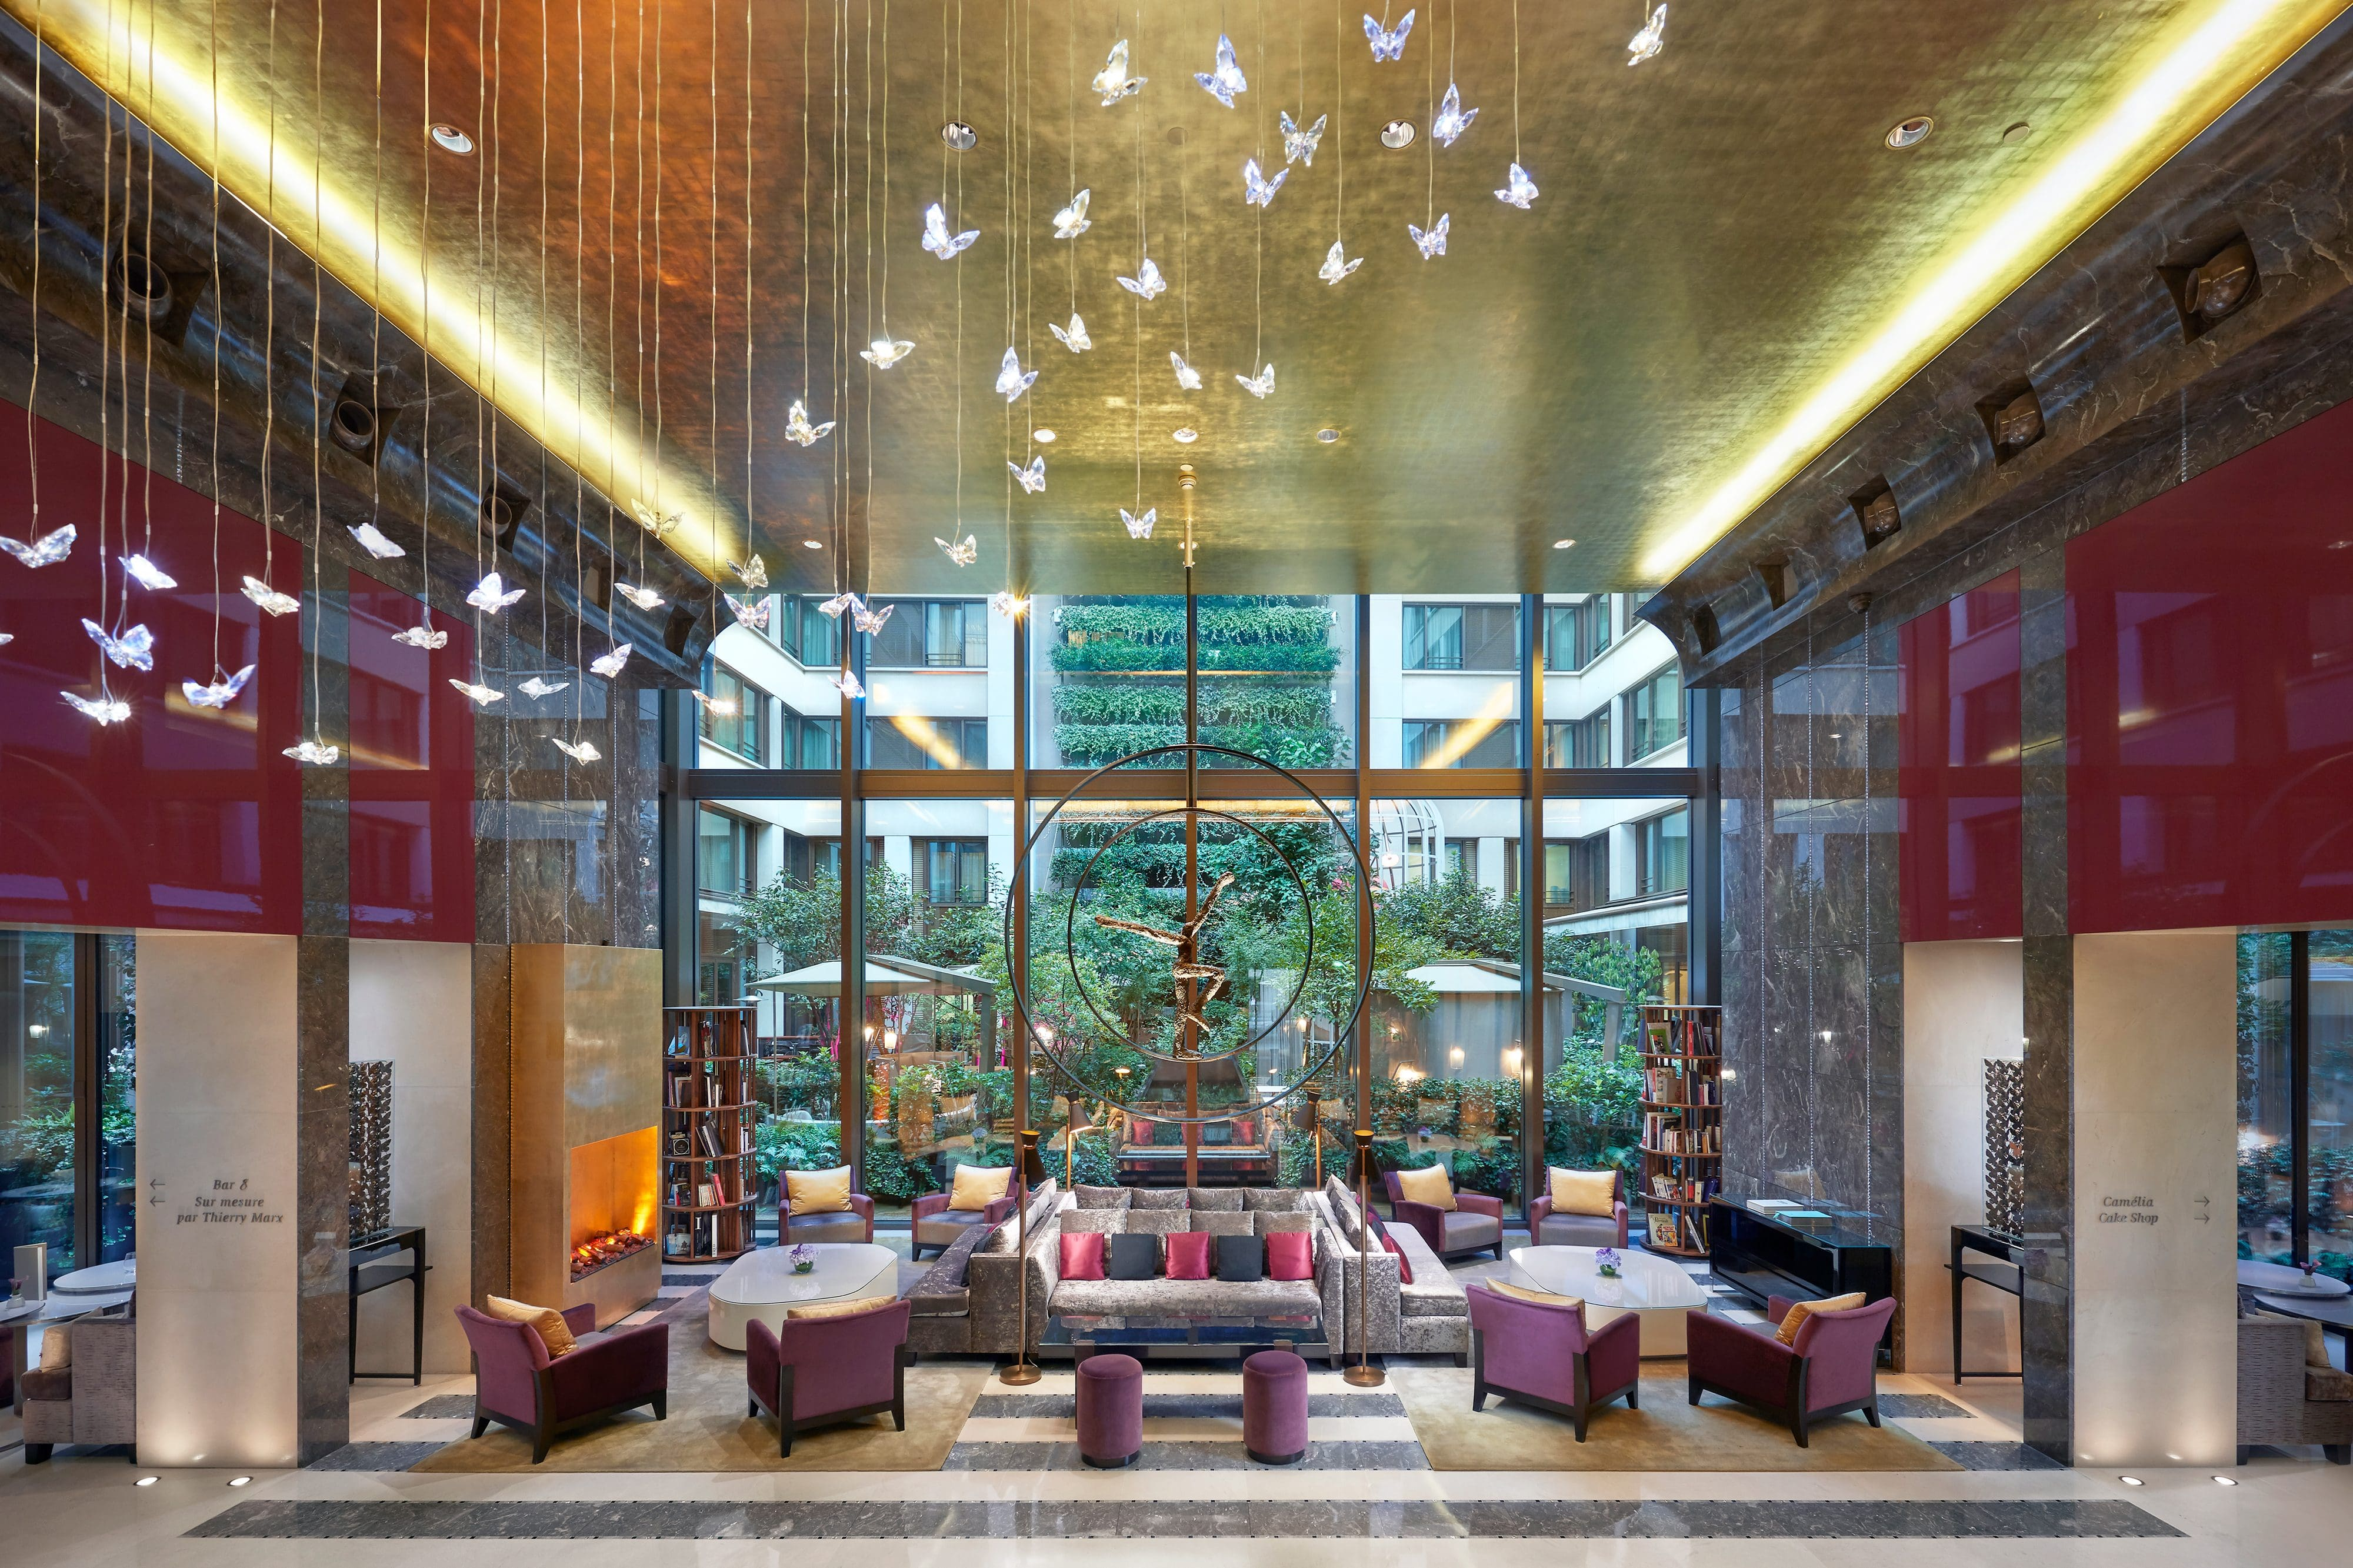 Plush sofas in the Lobby of Mandarin Oriental, Paris with crystal butterflies suspended from the ceiling